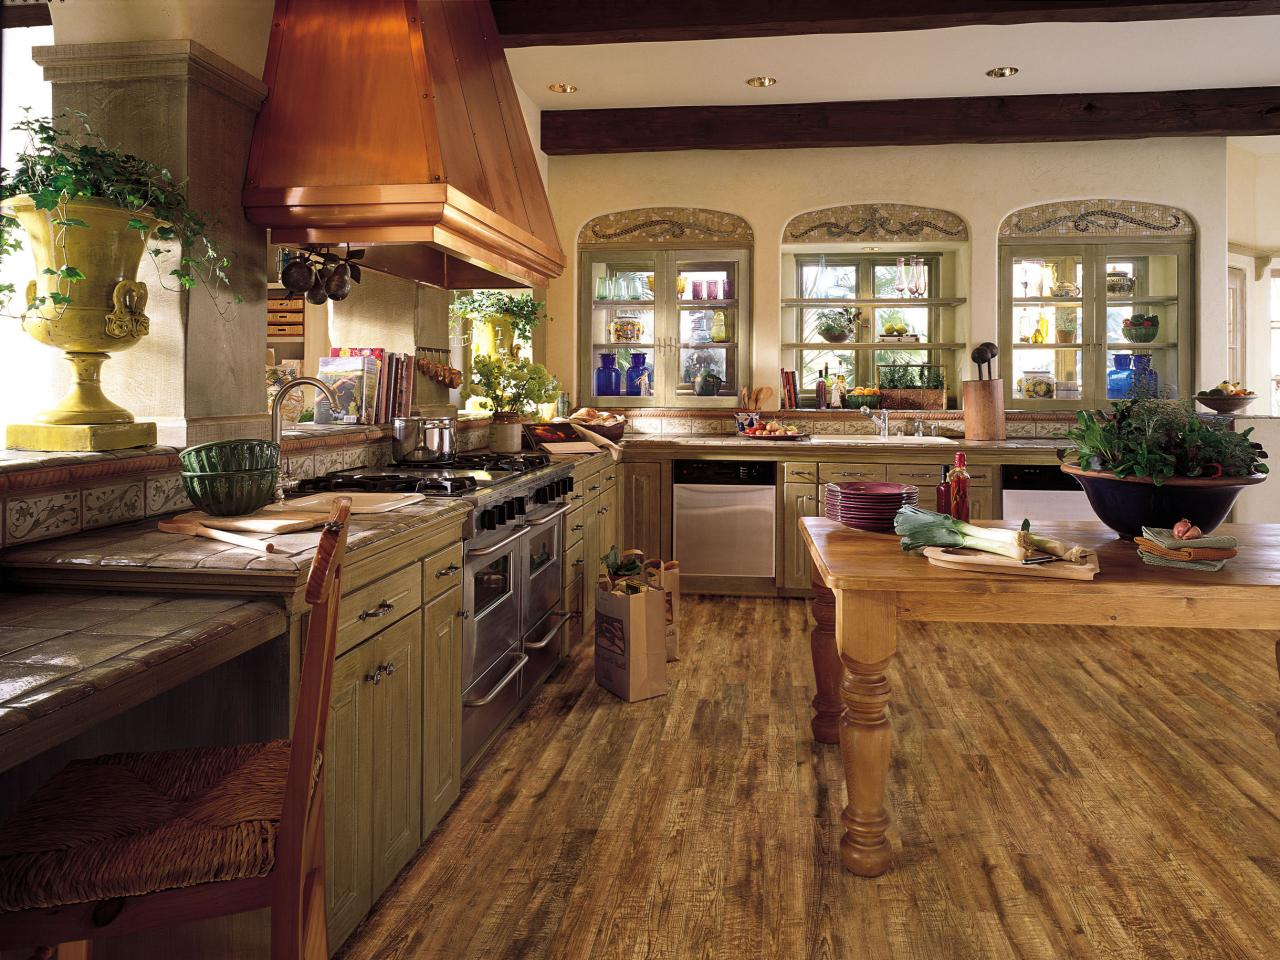 laminate flooring kitchen cabinets laminate flooring in the kitchen XSVCLYU